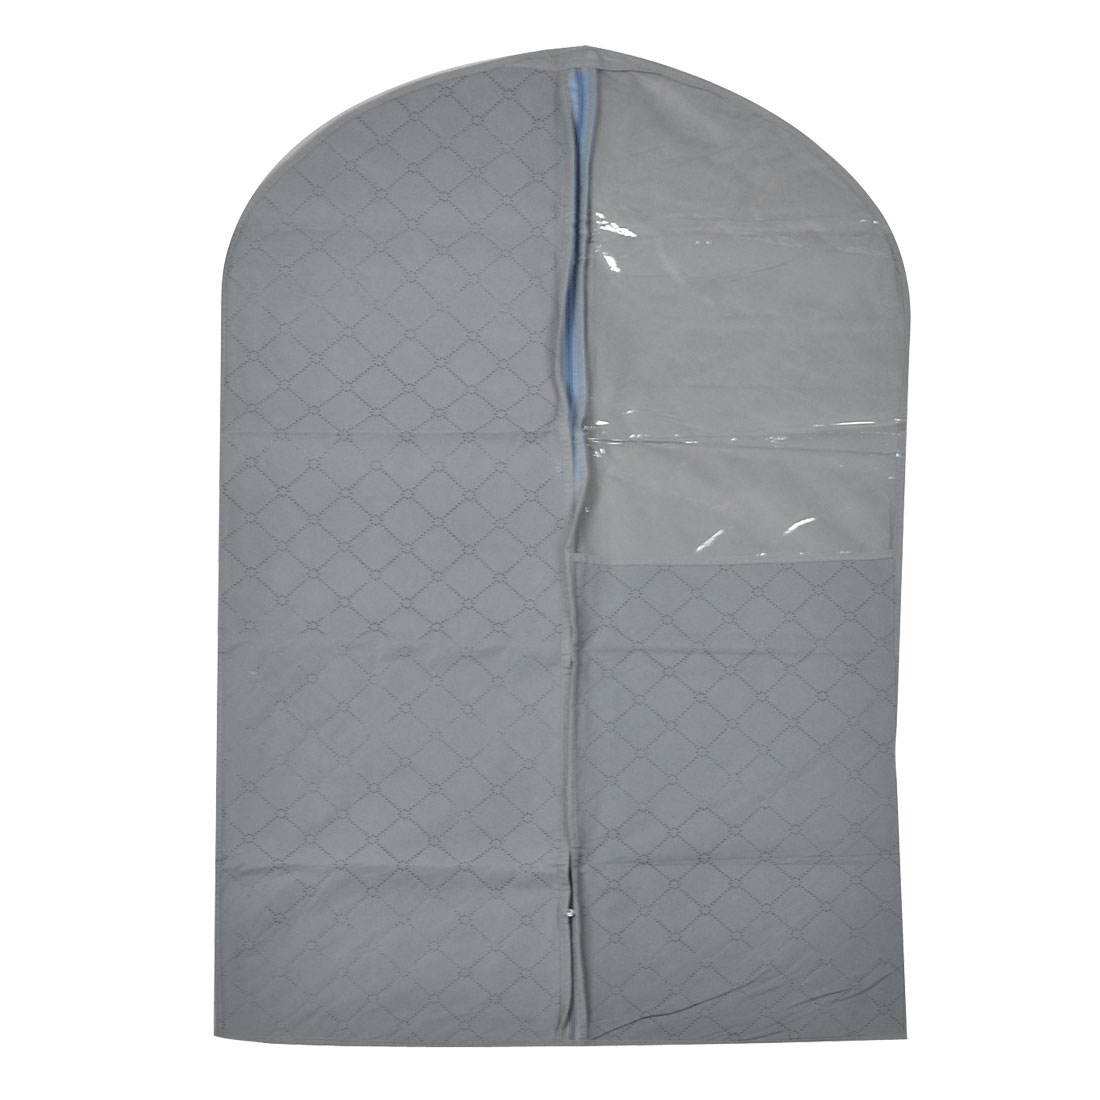 60cm x 100cm Gray Dust-proof Suit Clothes Garment Bag Protector Cover